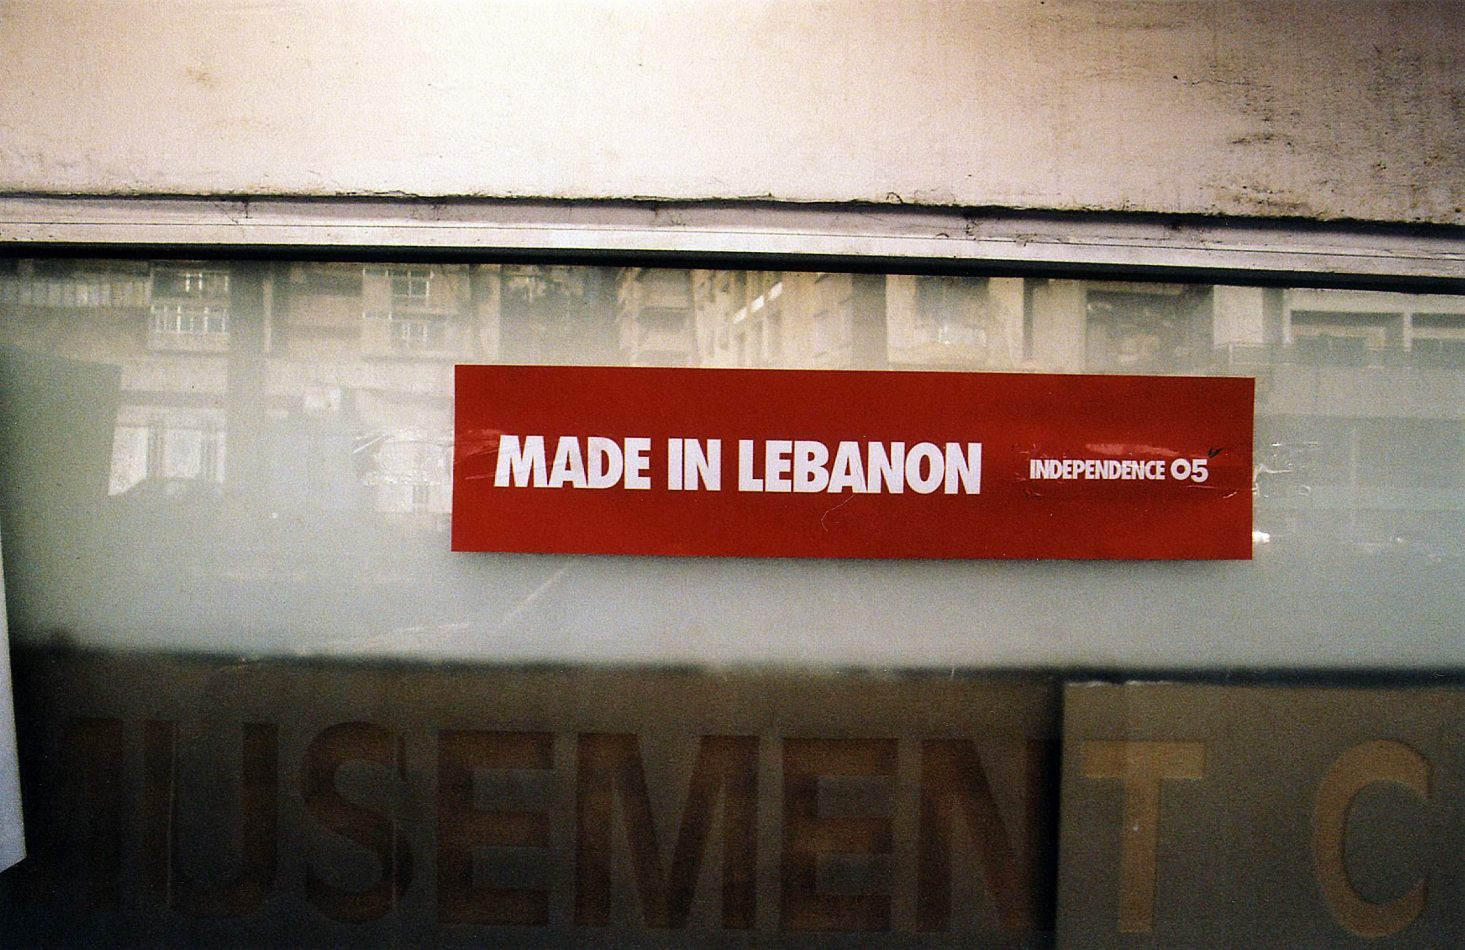 Anthony Ellis Photography: Confessions - Made in Lebanon